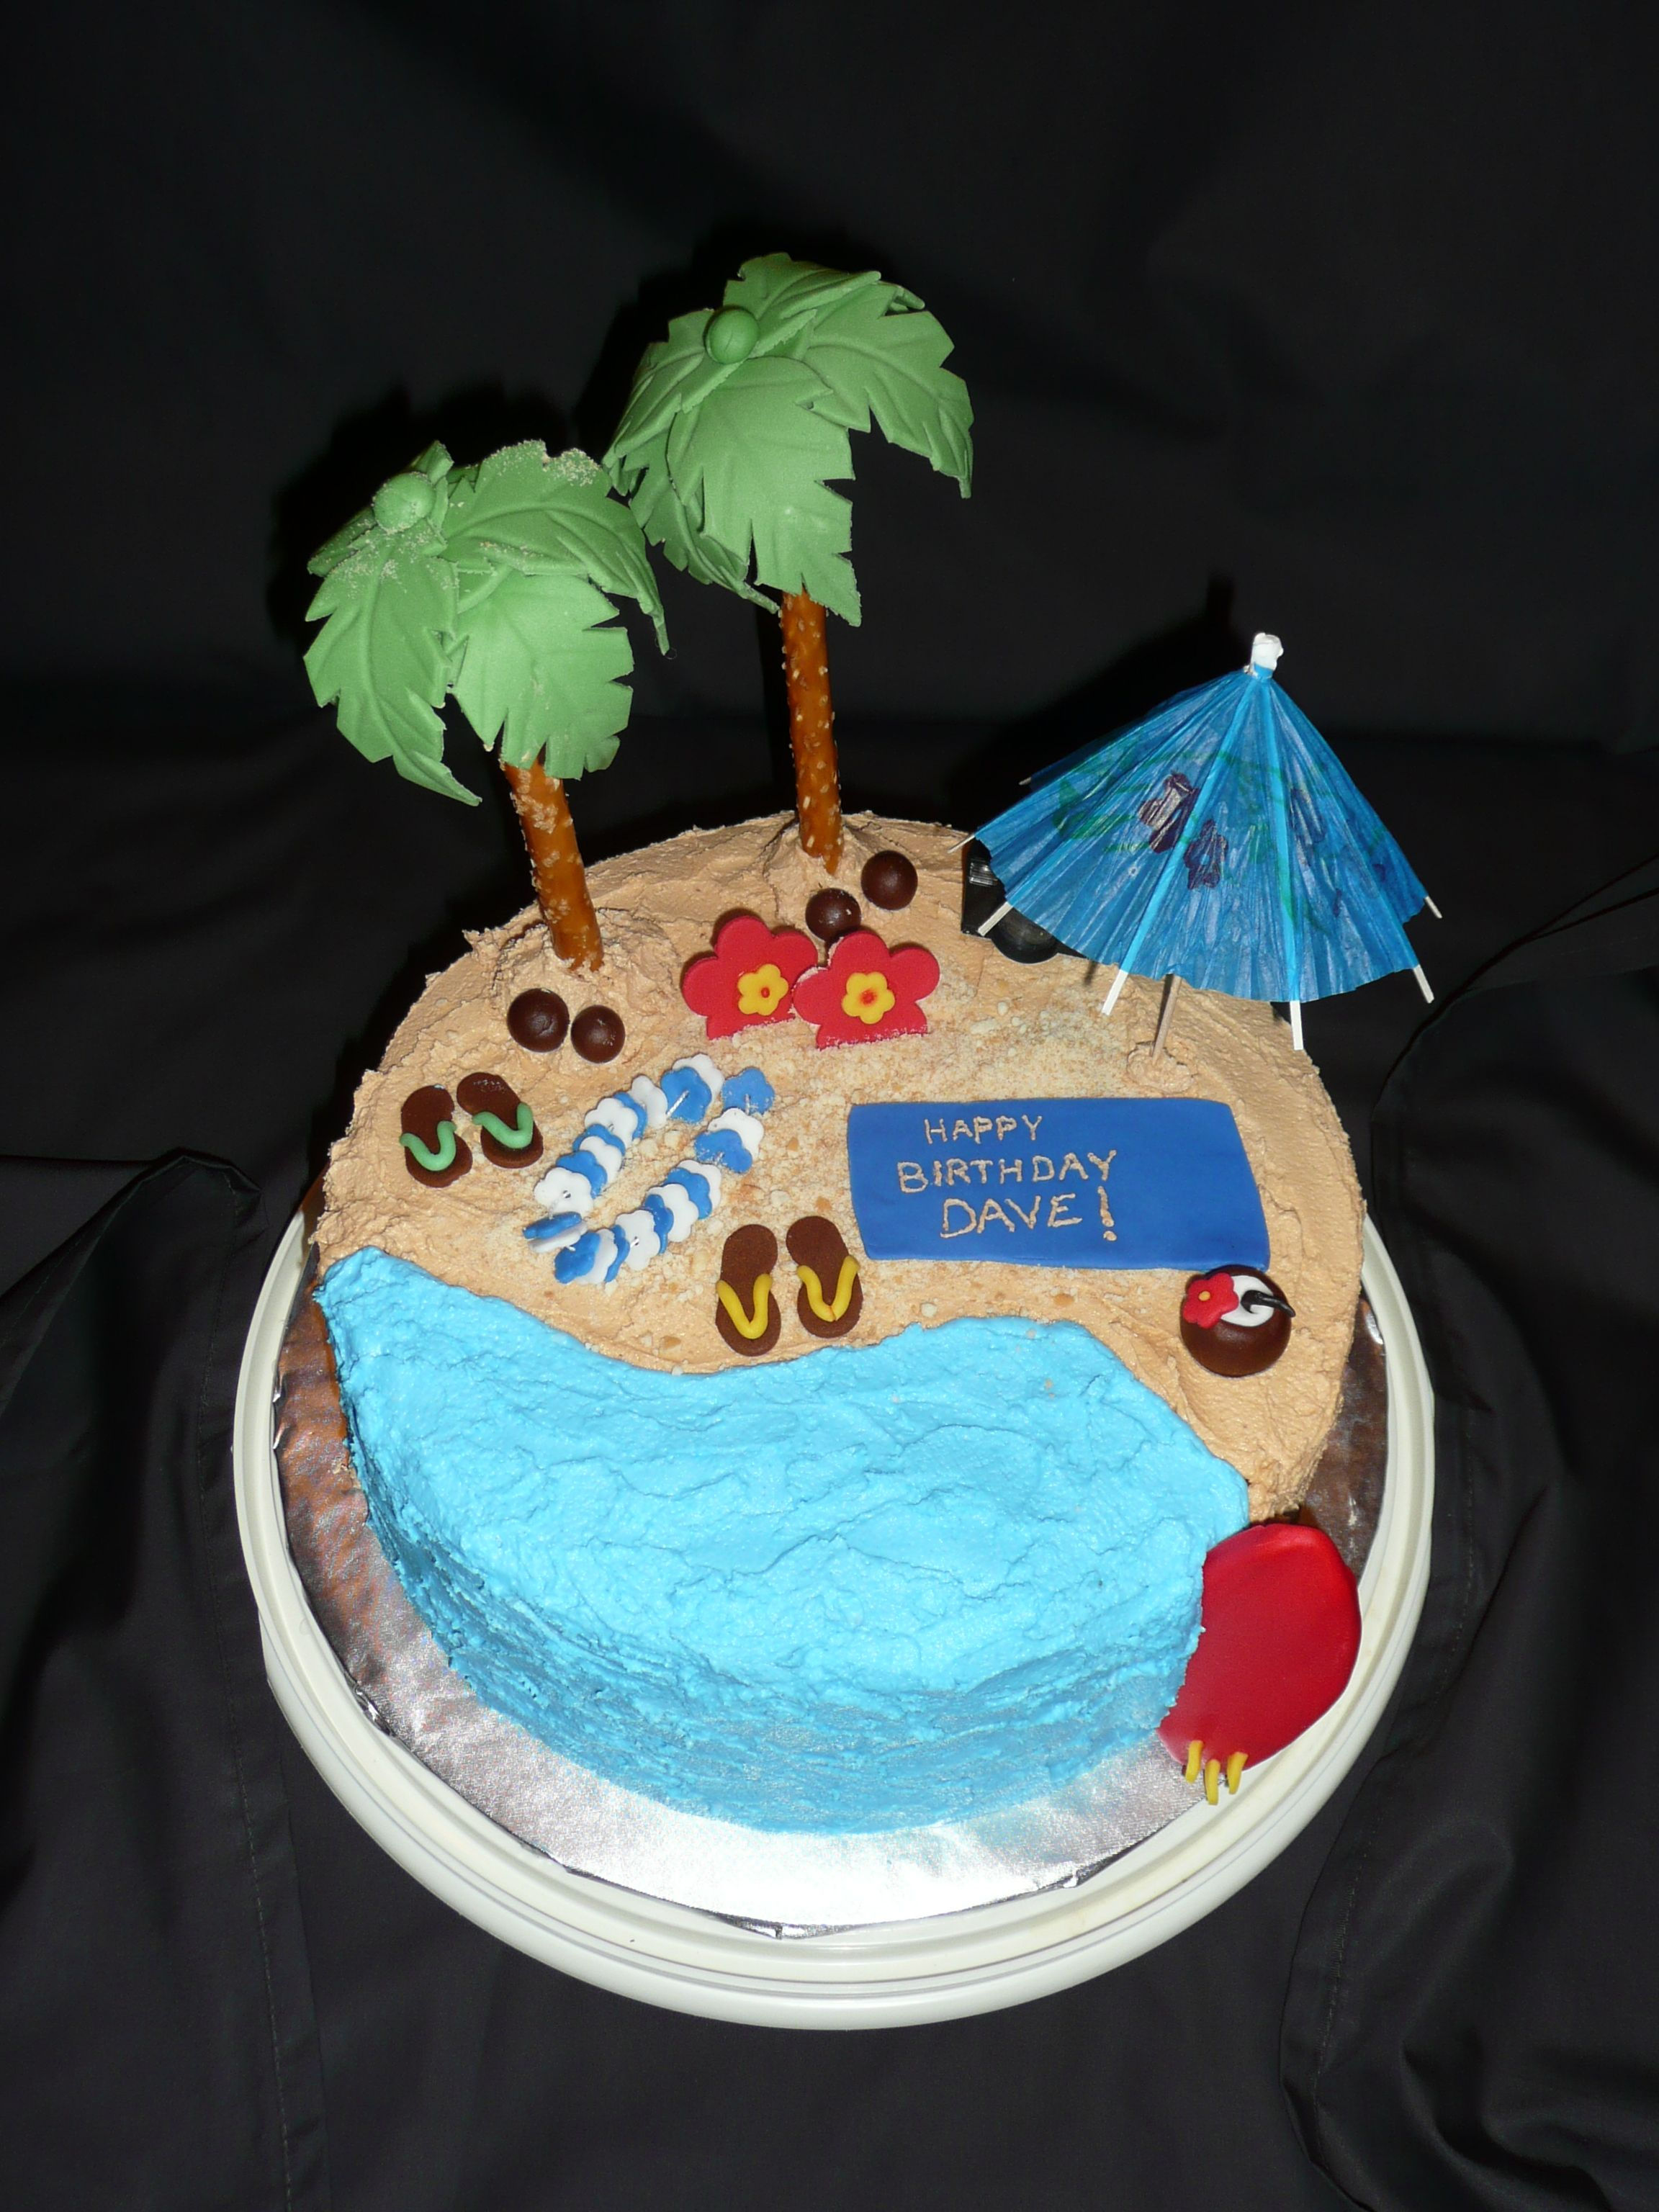 This Would Be Cute For The Cake With 2 Adult Footprints Sandles